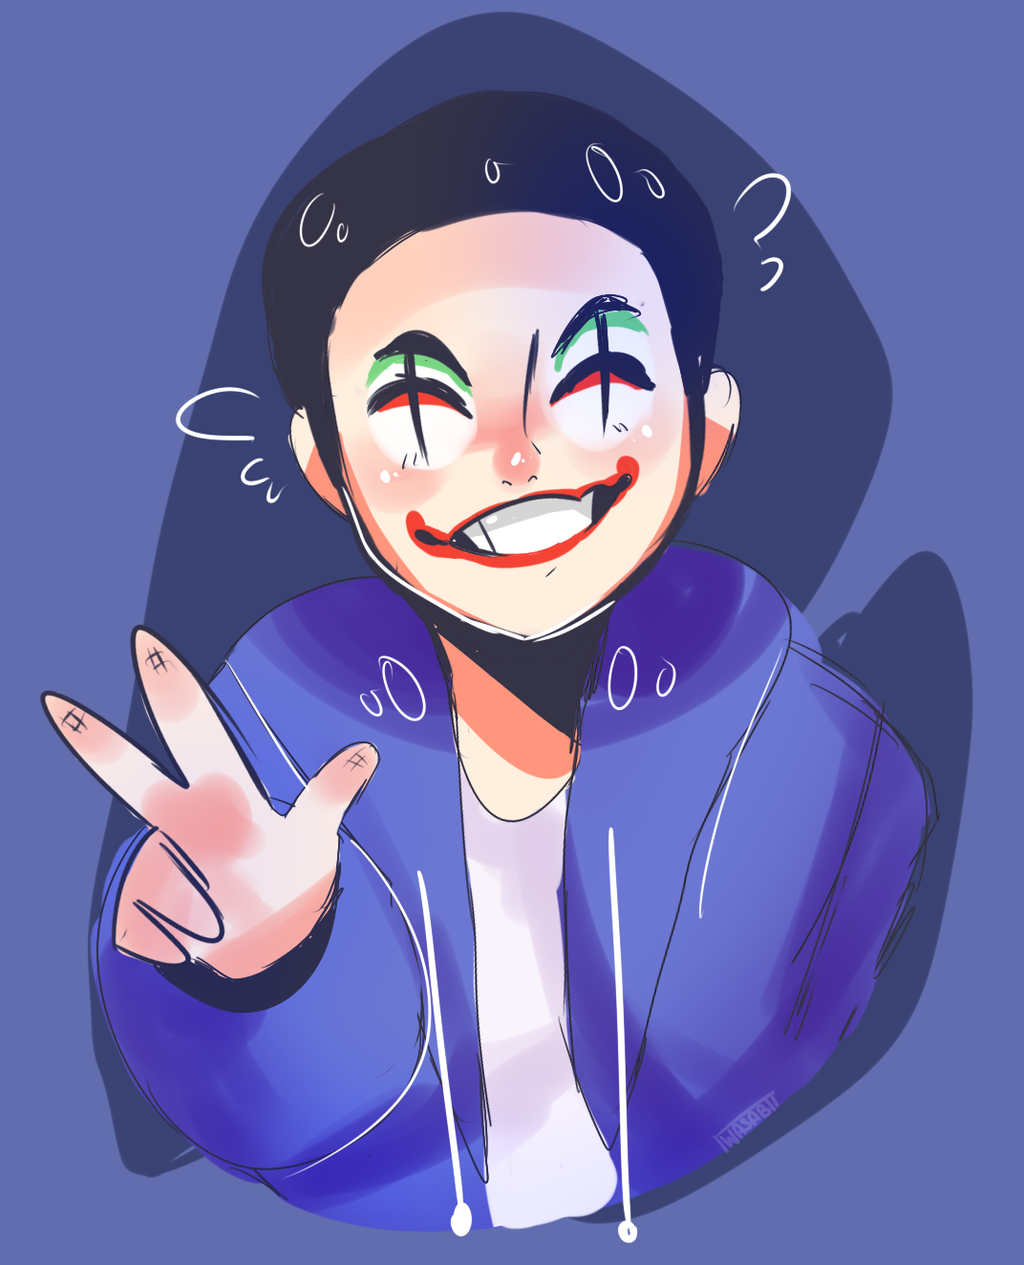 Cutie (h20) by PiNKi3XPiE on DeviantArt H20 Delirious Drawings